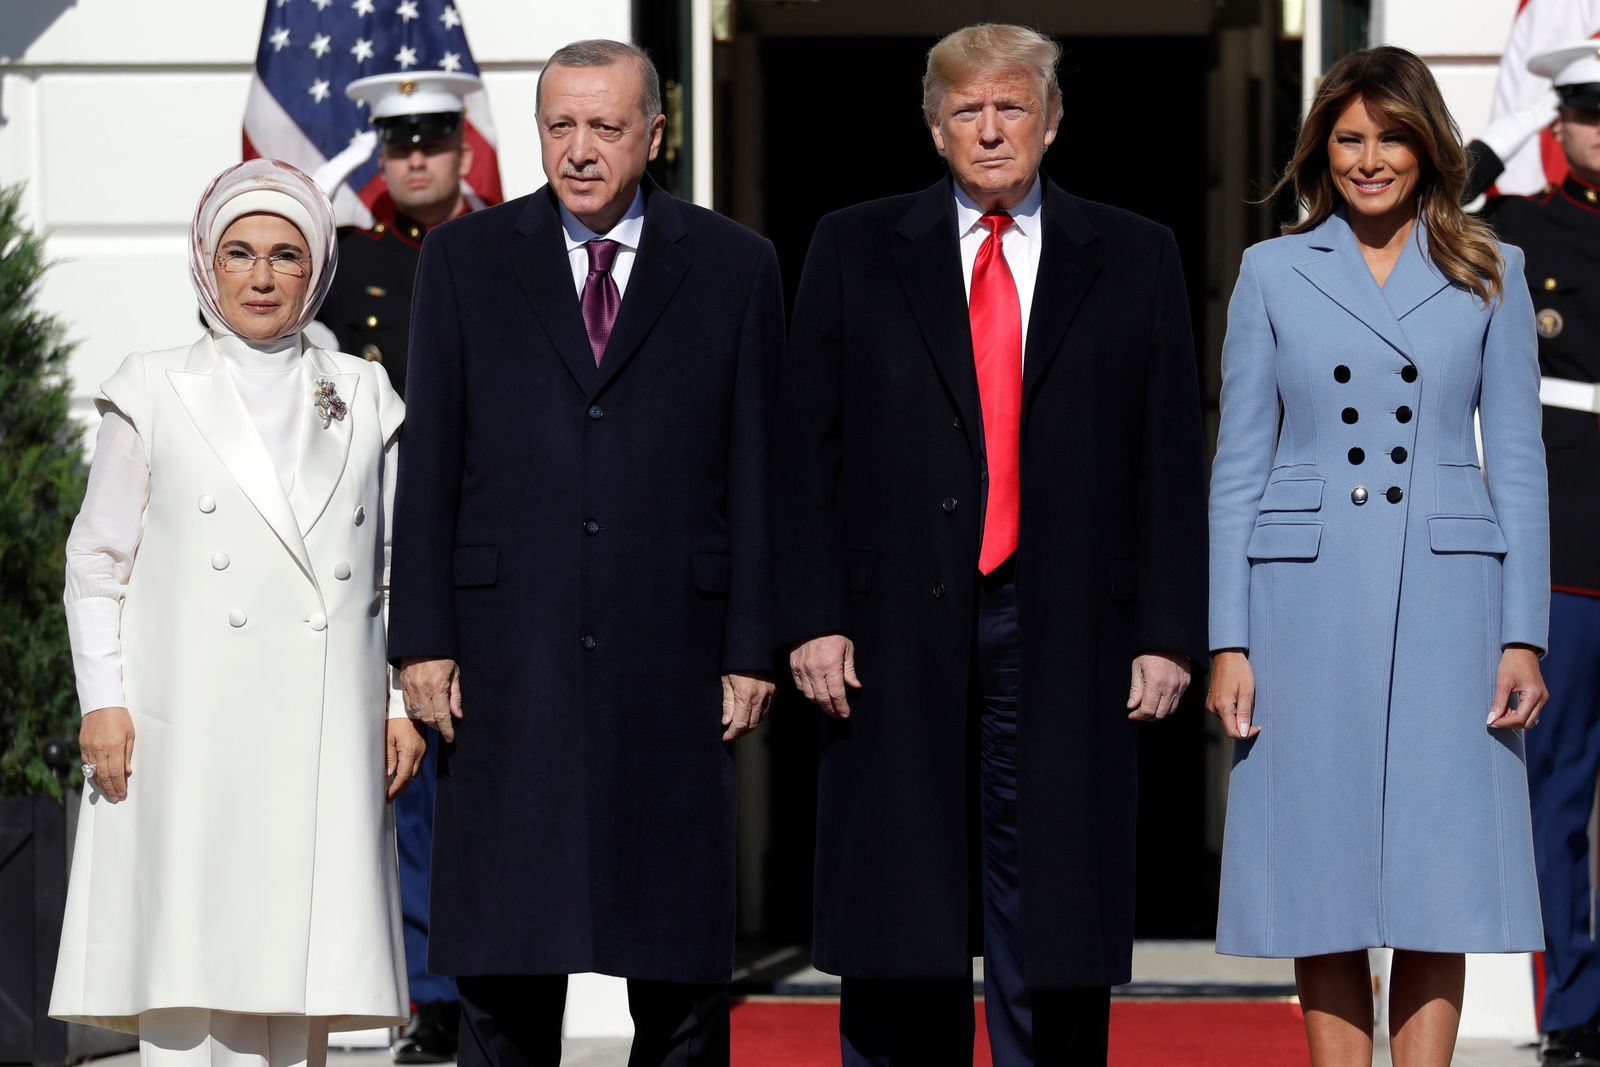 President Donald Trump and first lady Melania Trump welcome Turkish President Recep Tayyip Erdogan and his wife Emine Erdogan to the White House, Wednesday, Nov. 13, 2019, in Washington. (AP Photo/ Evan Vucci)